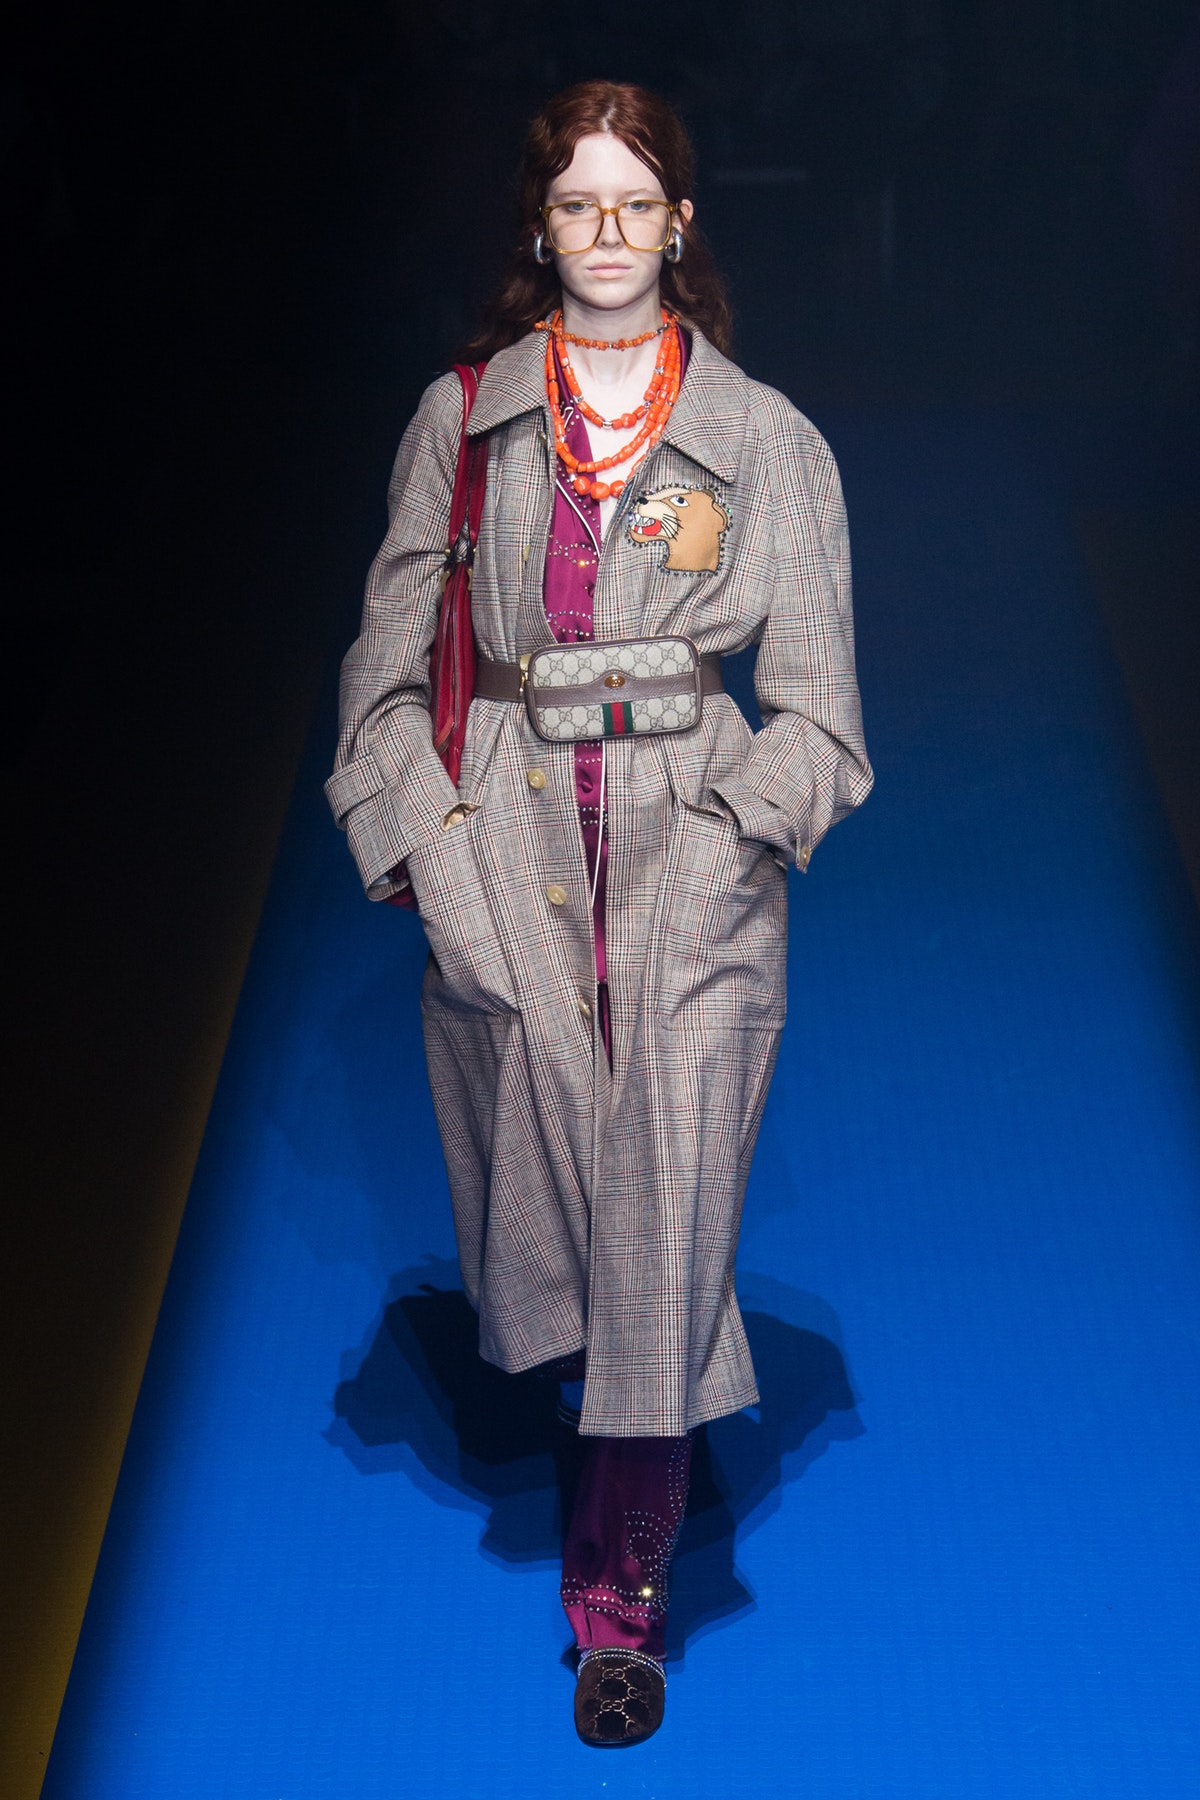 gucci_look_35_ready_to_wear_spring_2018.jpeg